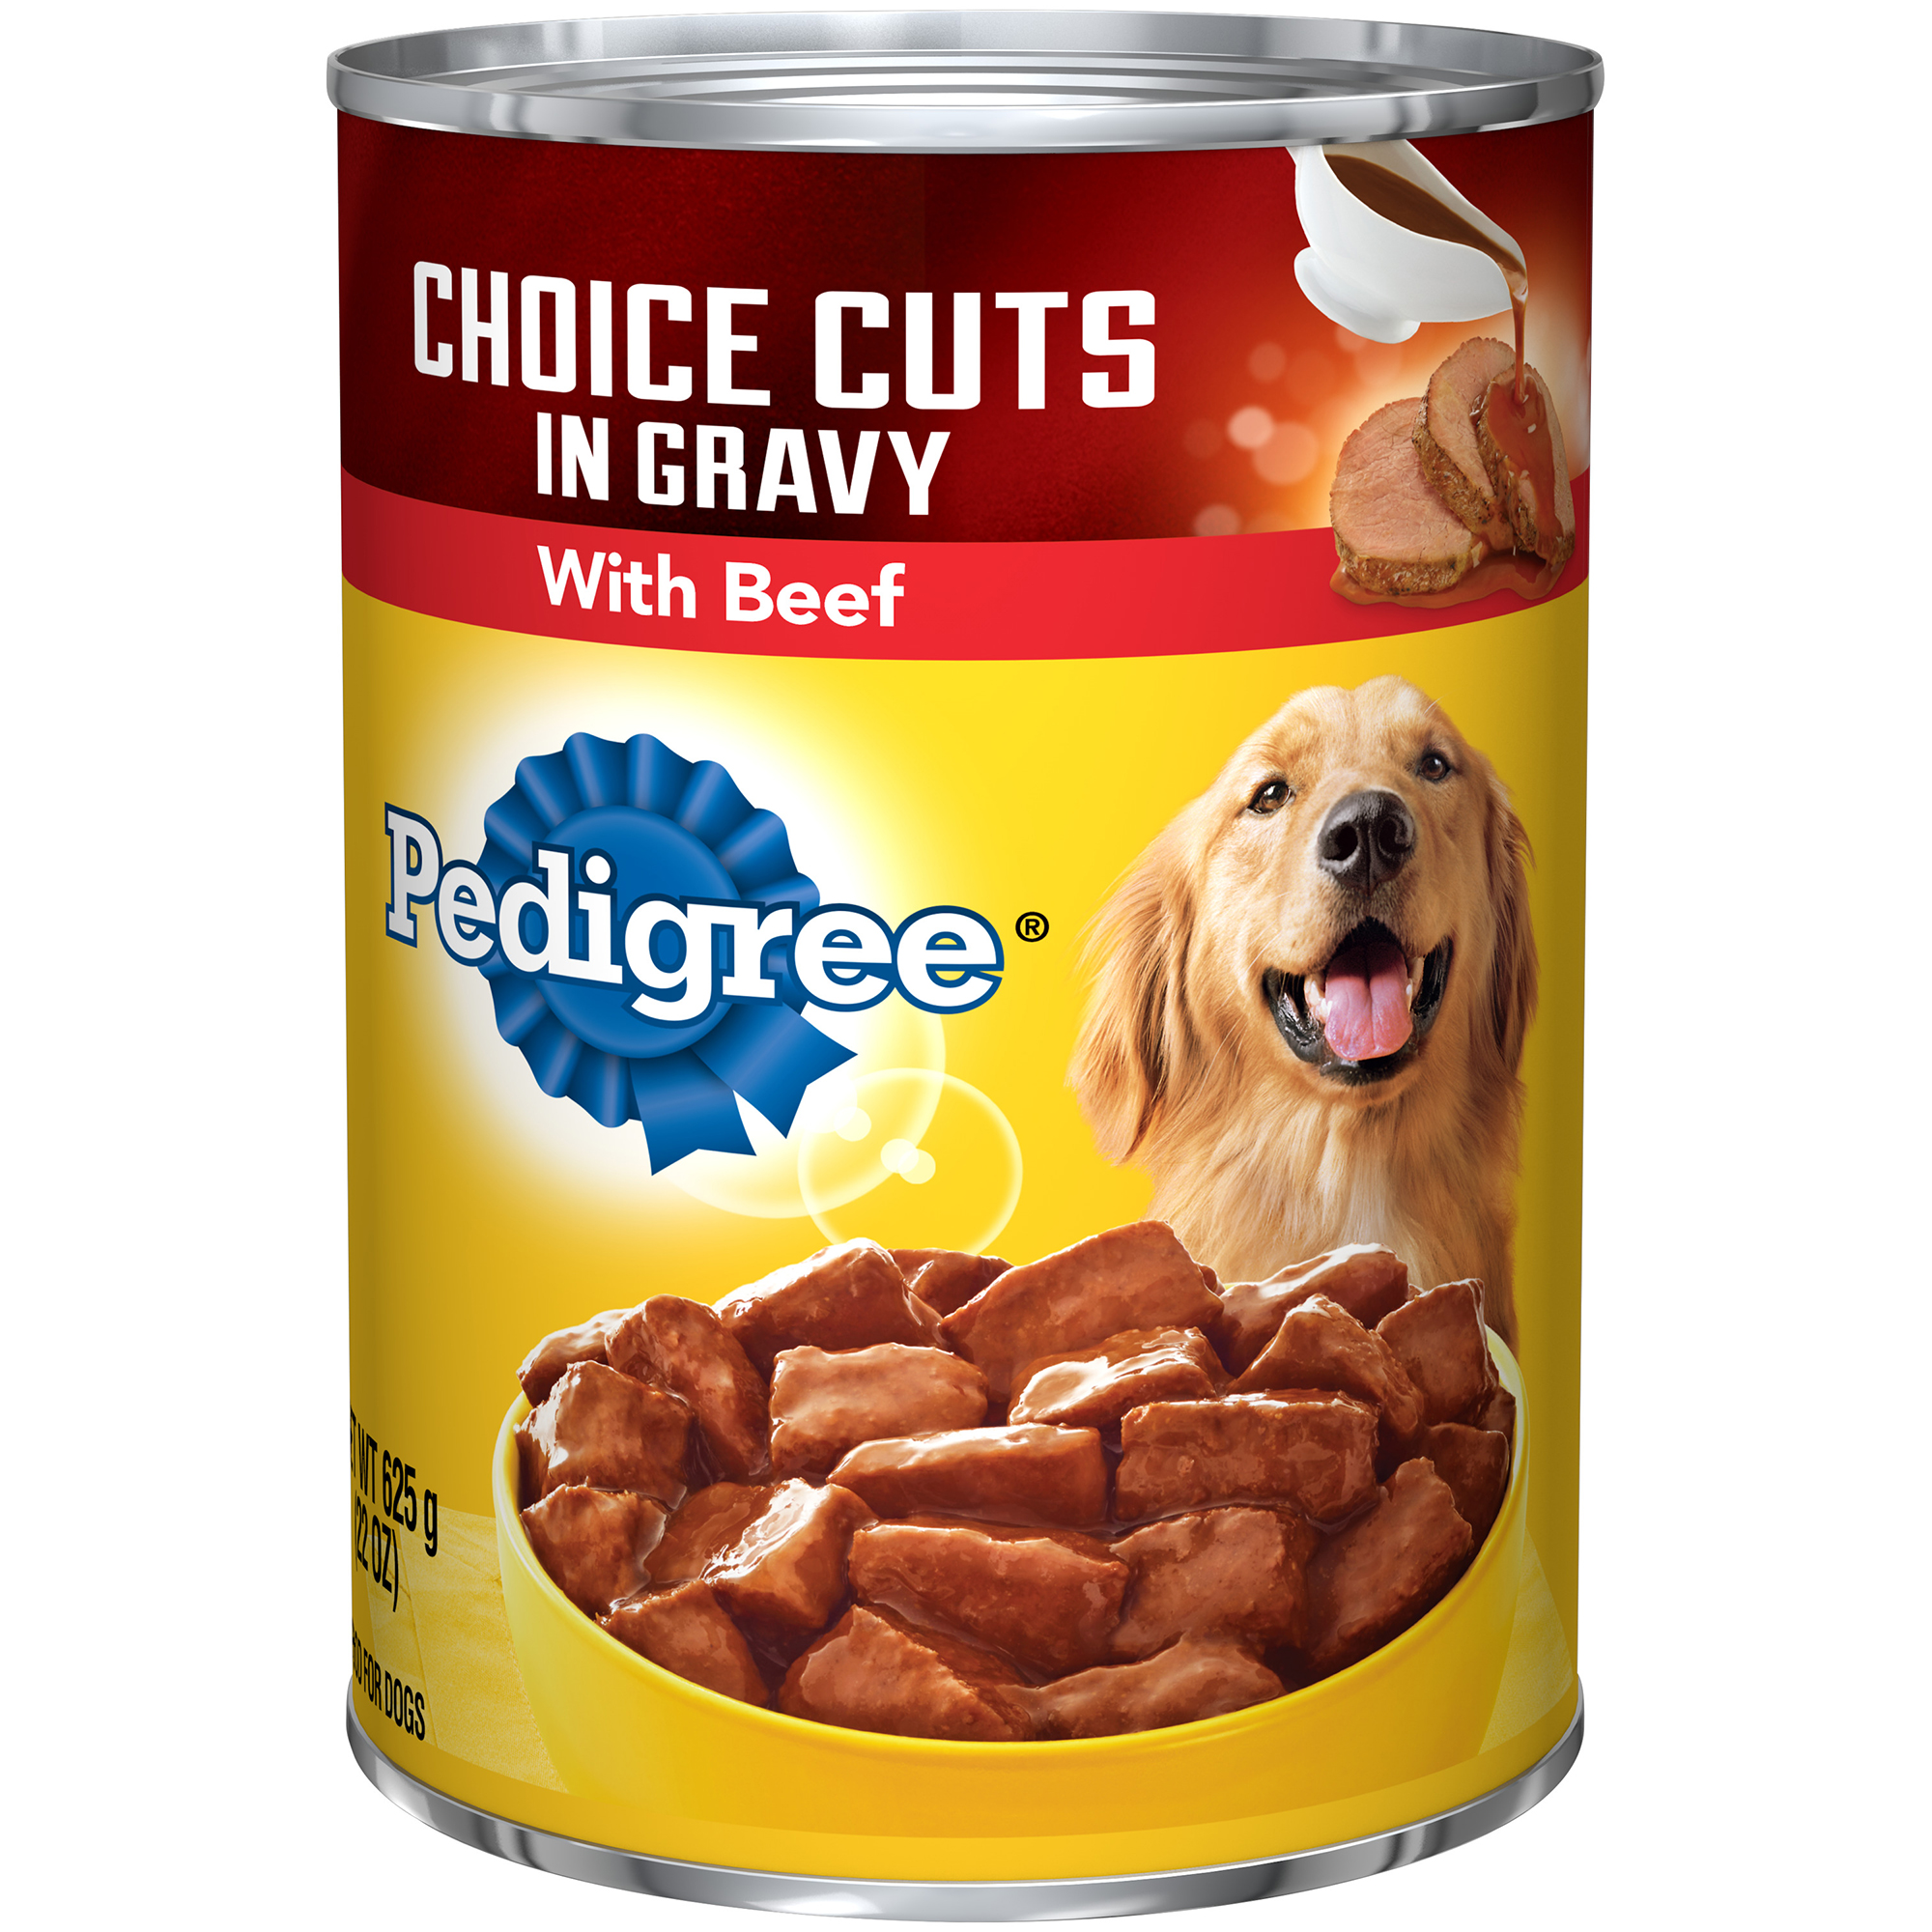 PEDIGREE CHOICE CUTS in Gravy With Beef Canned Dog Food 22 Ounces